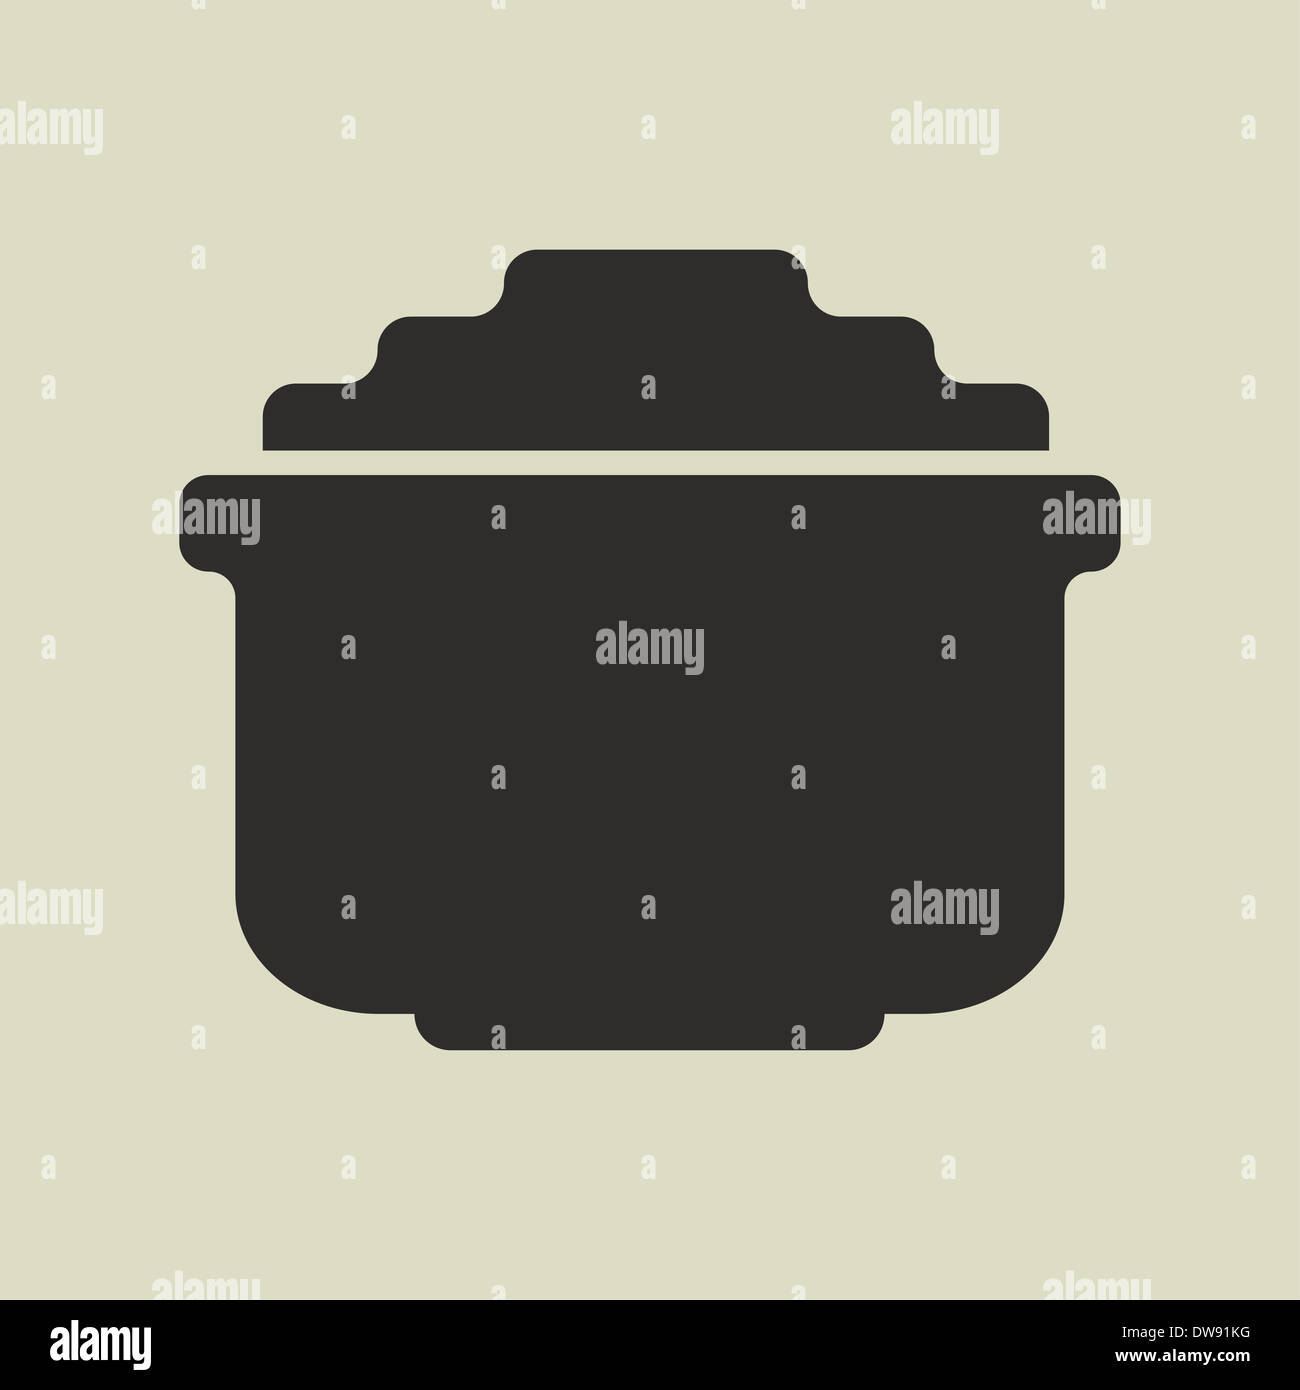 Stylized shiny cartoon pot of gold - Stock Image